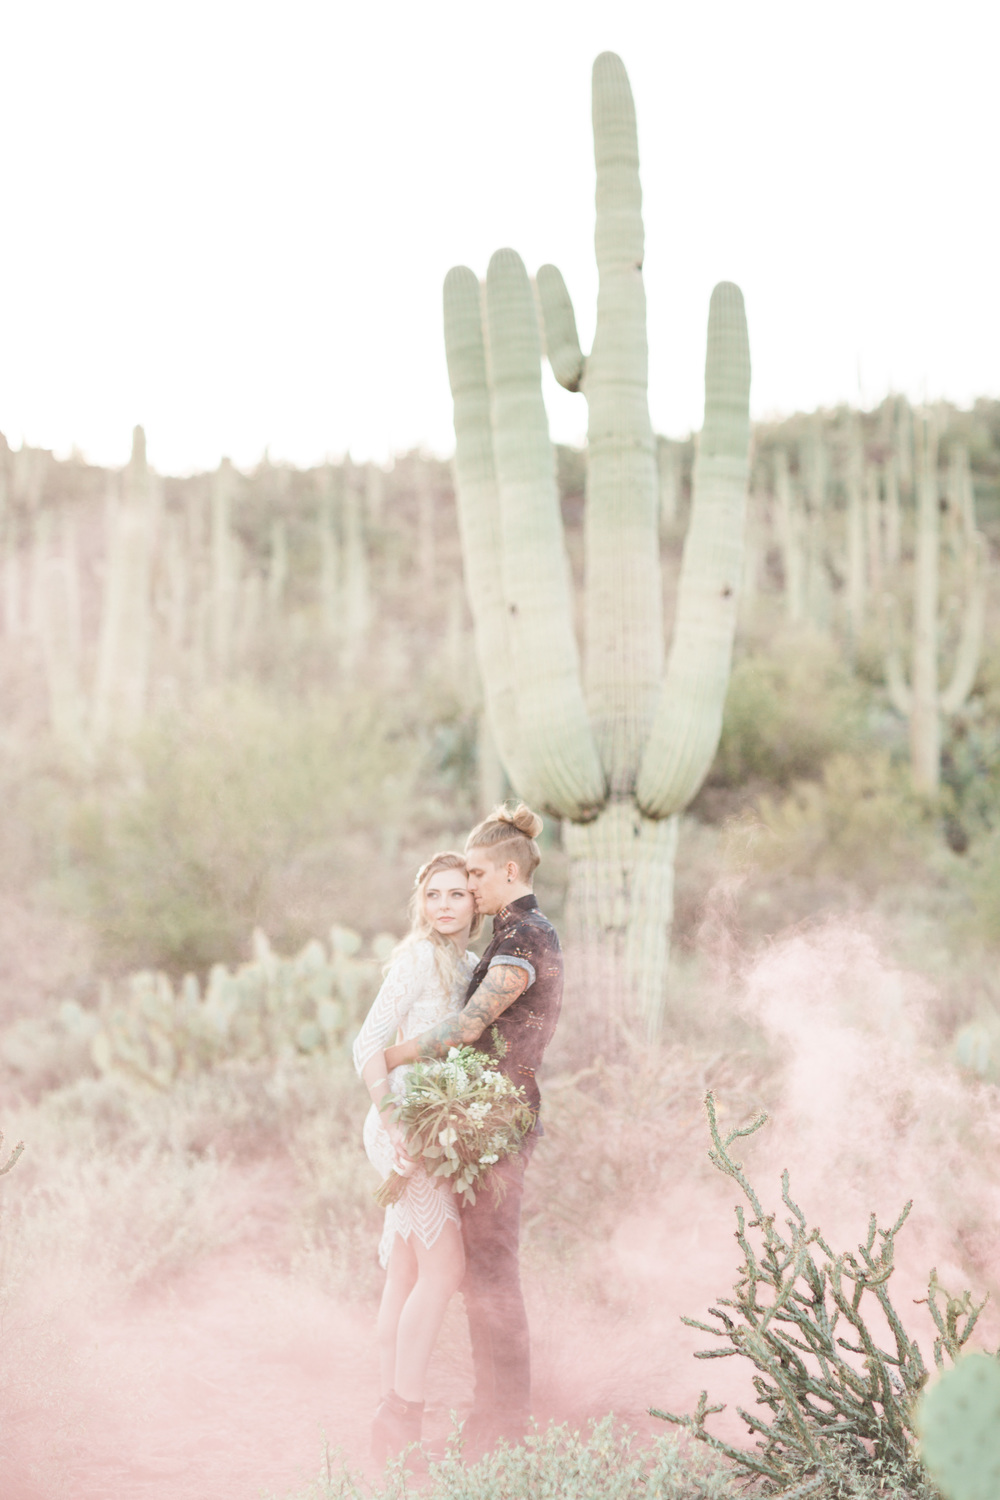 Bride and groom hugging in the desert with cactus in the background and pink smoke surrounding them